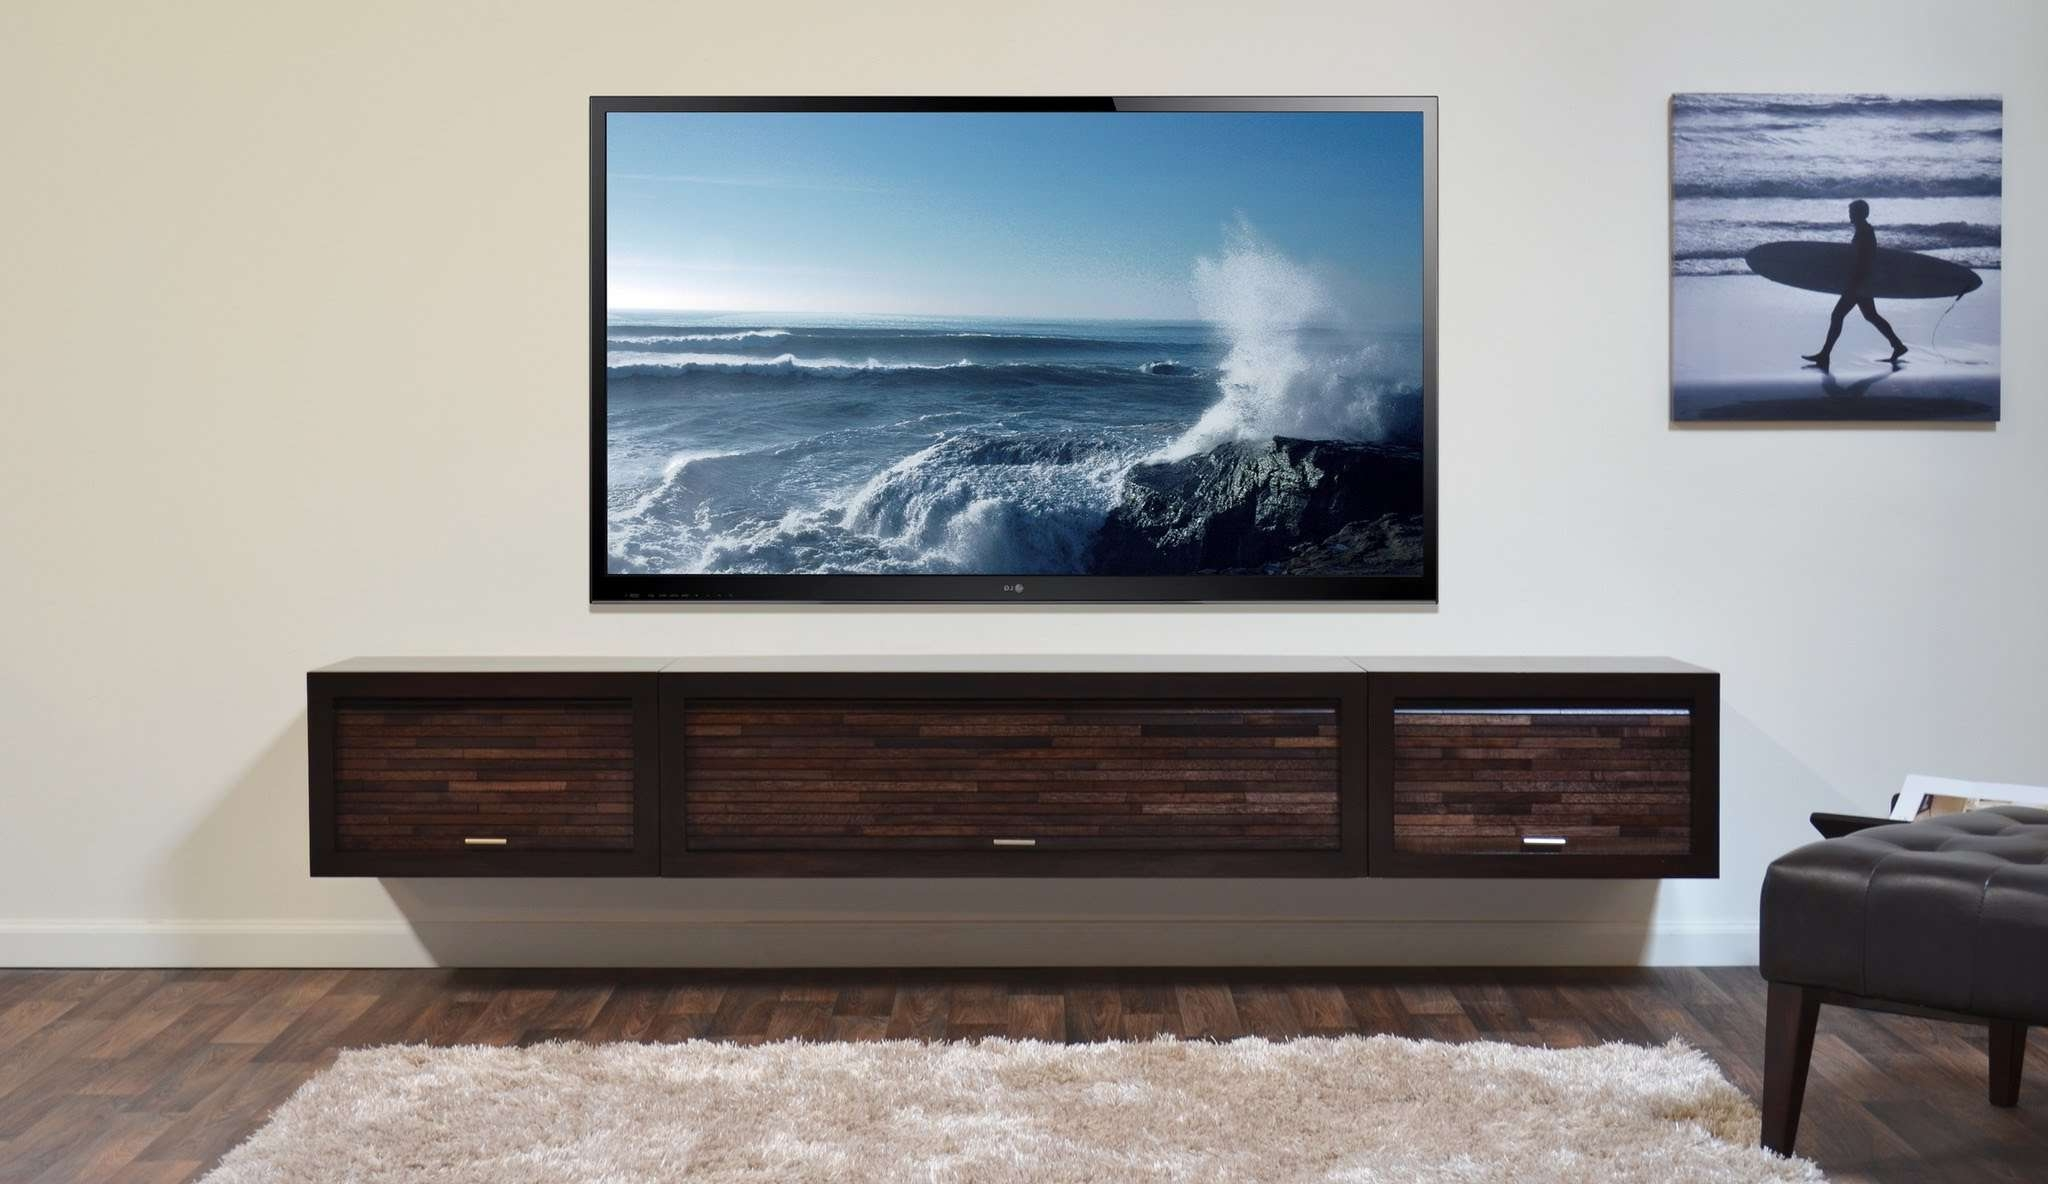 Diy Modern Tv Stand, Tv Stand Project On Pinterest – Youtube Regarding Modern Tv Stands With Mount (View 12 of 15)